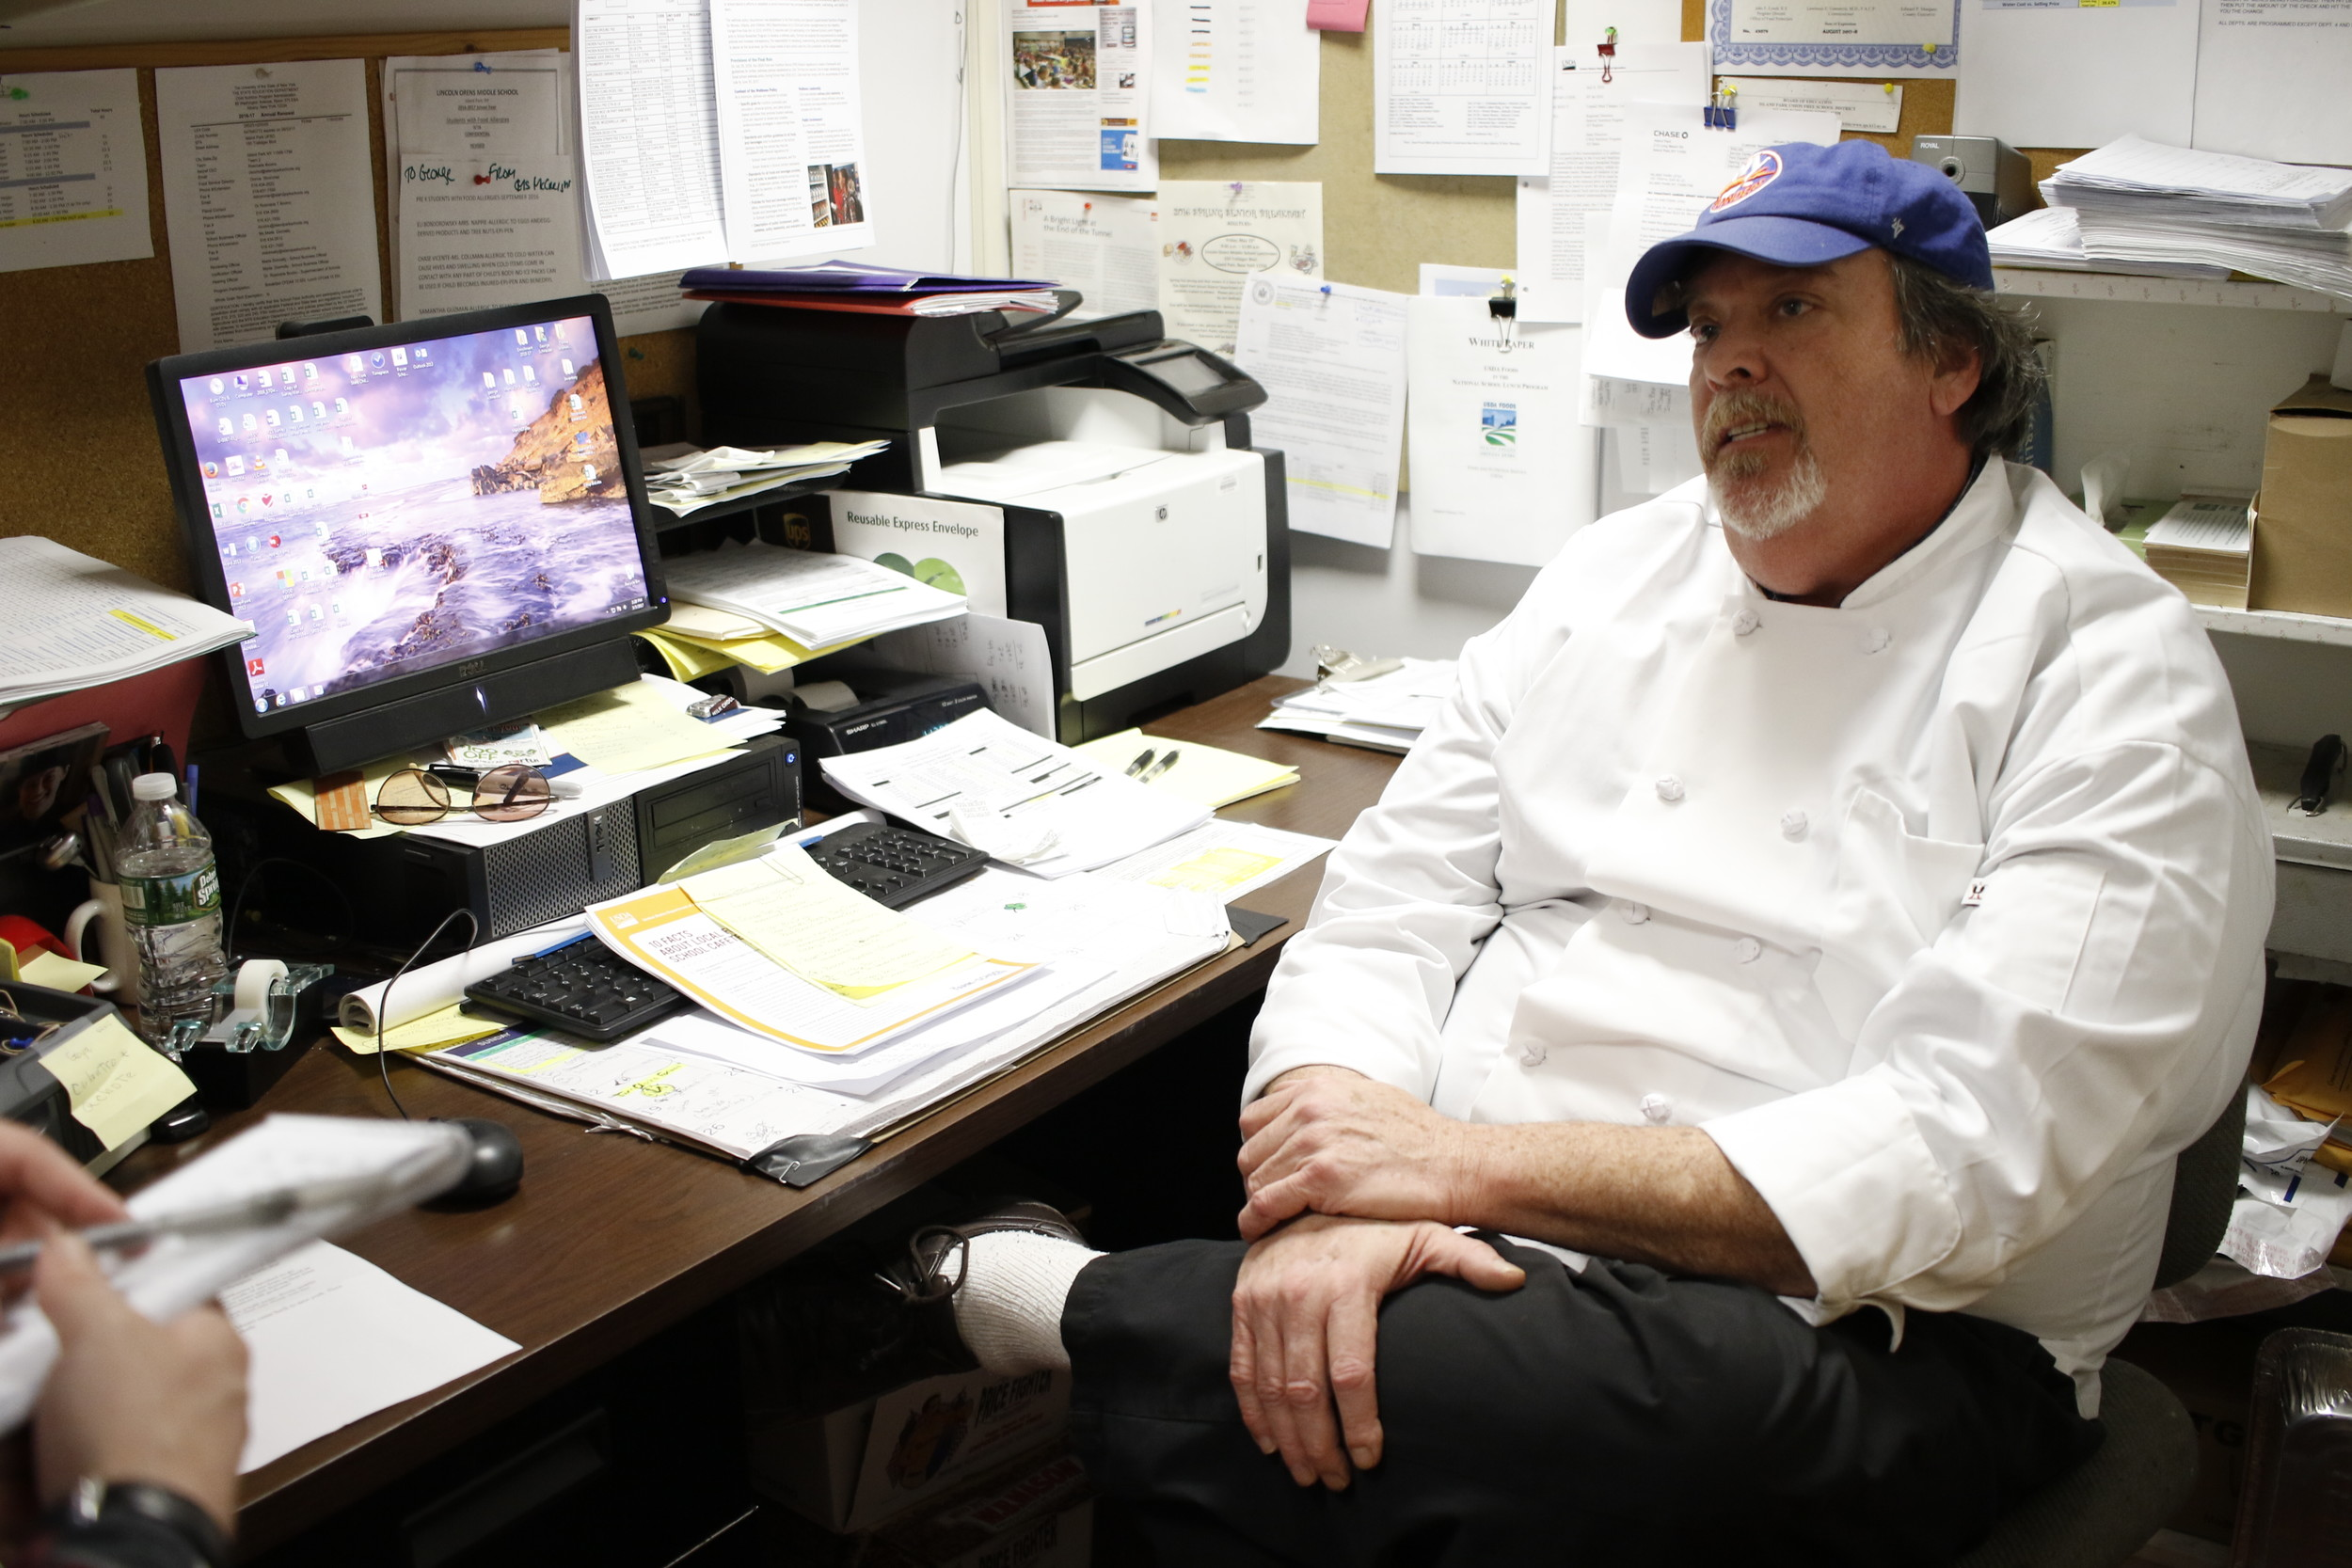 As food services director, Chef Schneider's position is largely managerial, but occasionally he manages to make his way into the kitchen.